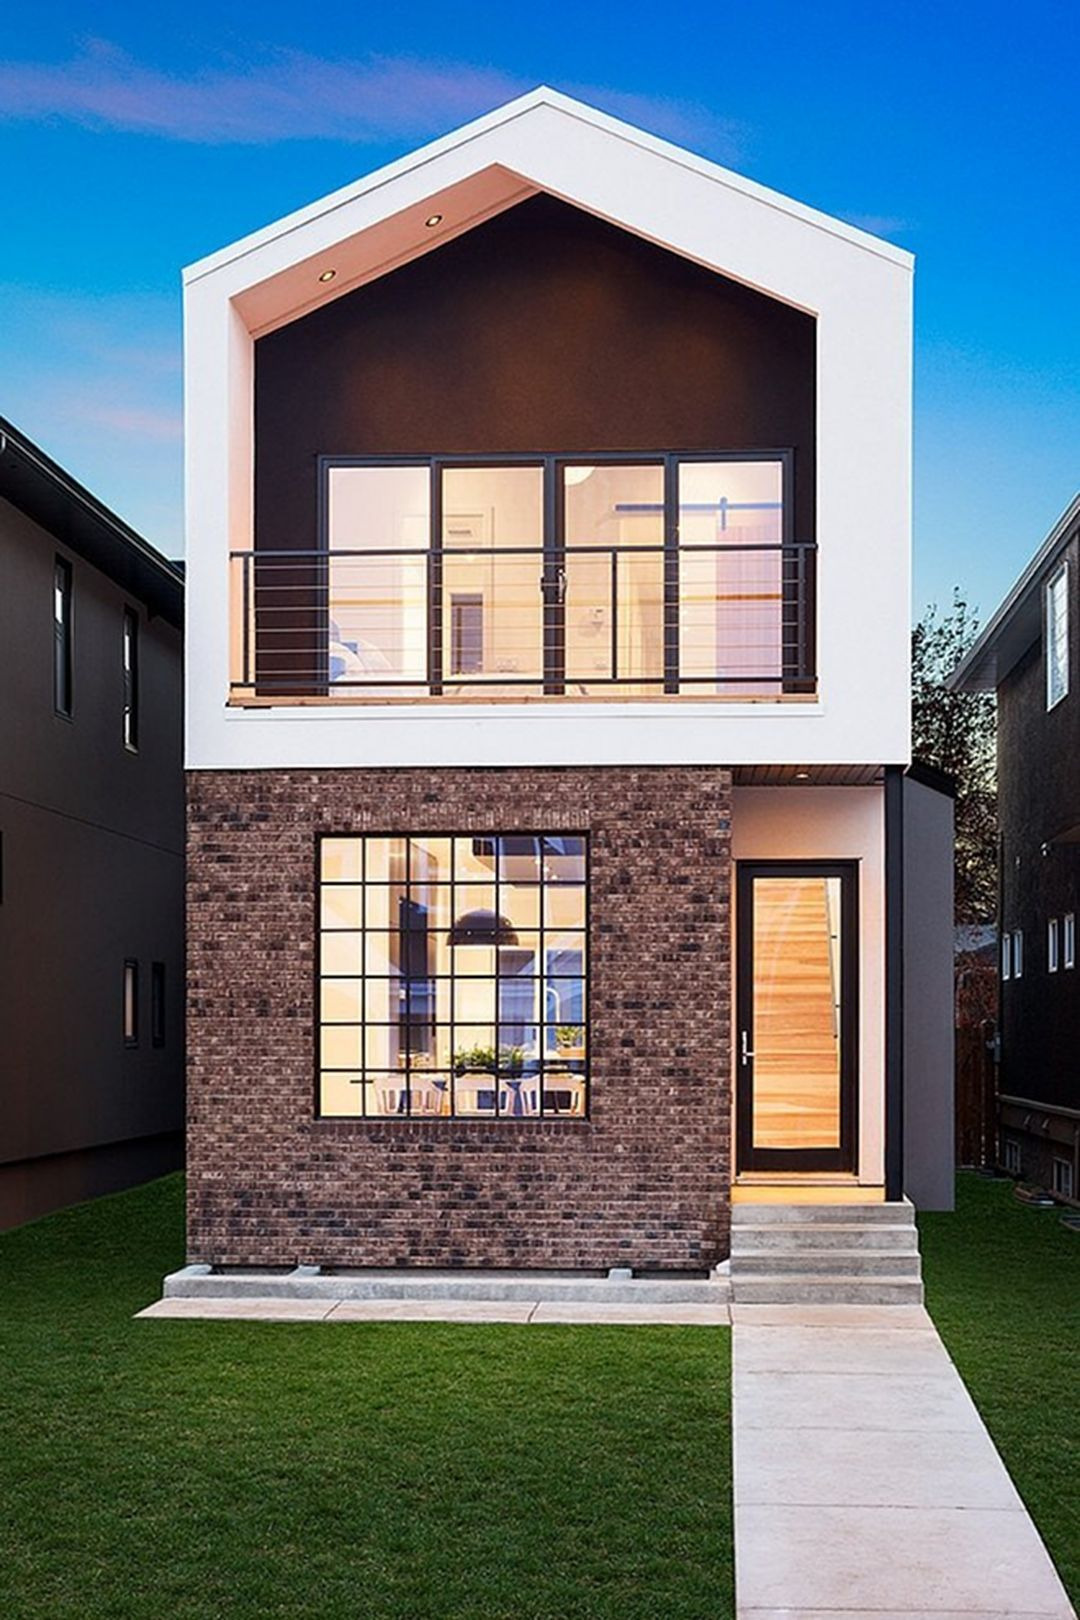 Small Contemporary Home Designs Luxury 25 Awesome Modern Tiny Houses Design Ideas for Simple and